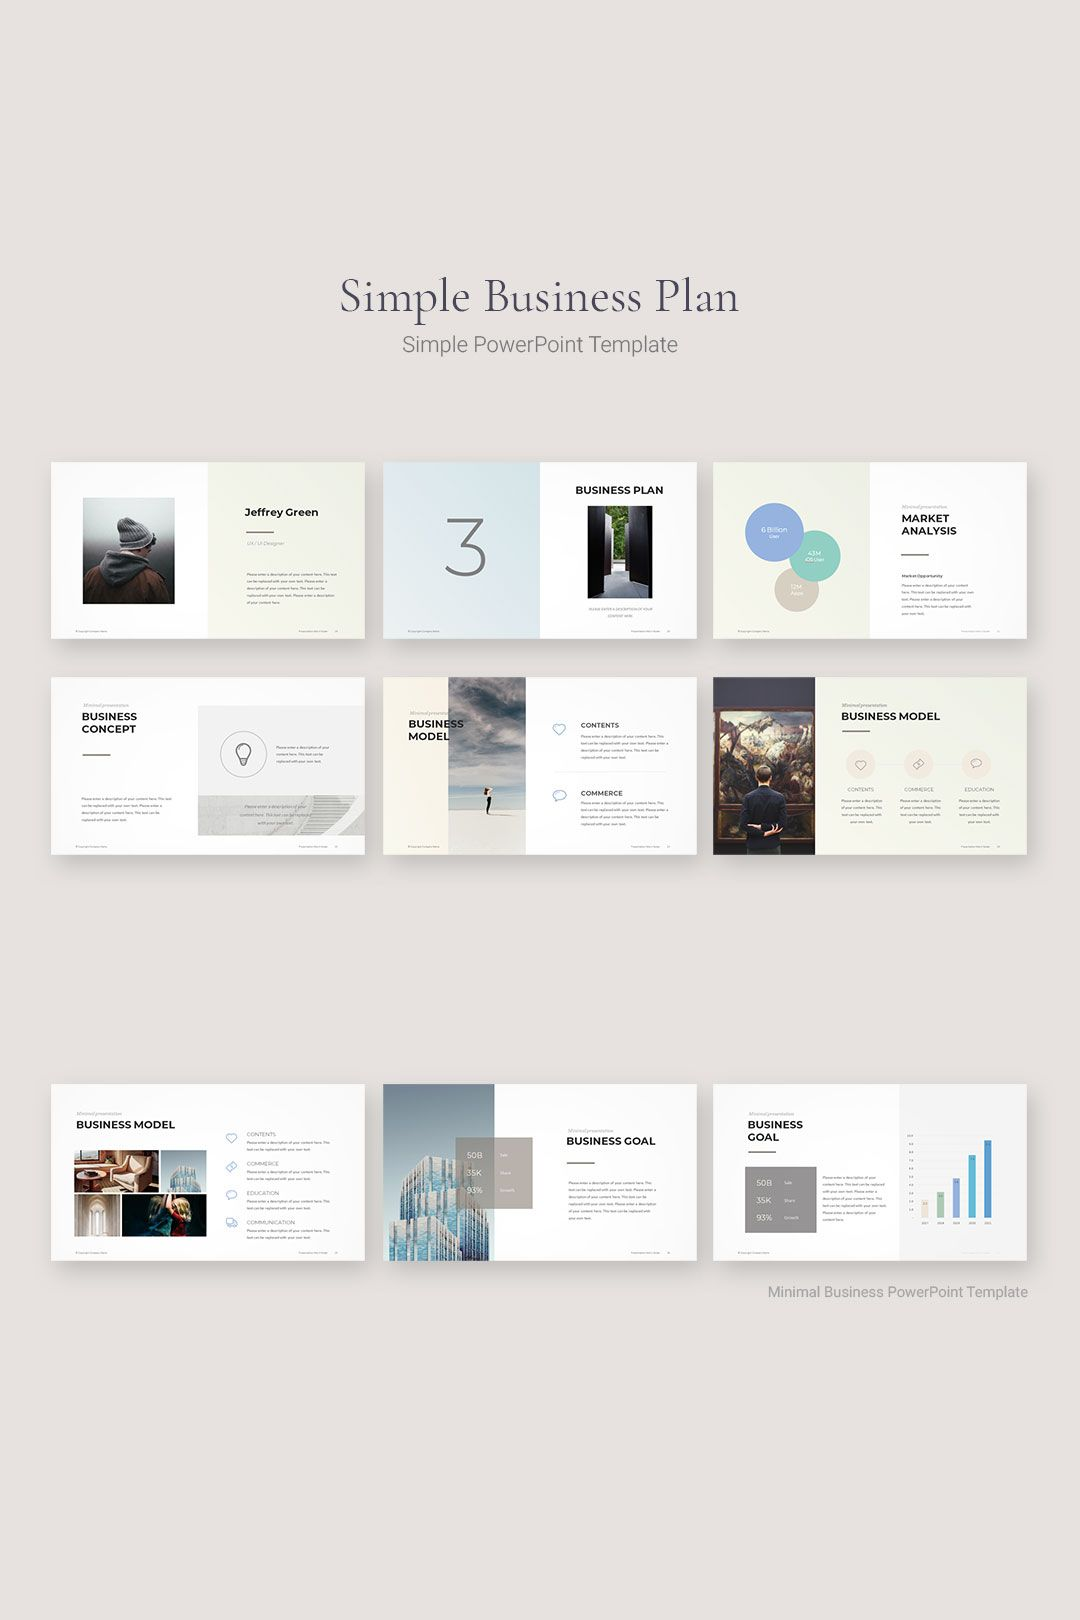 Minimal Business Plan PowerPoint Template Simple